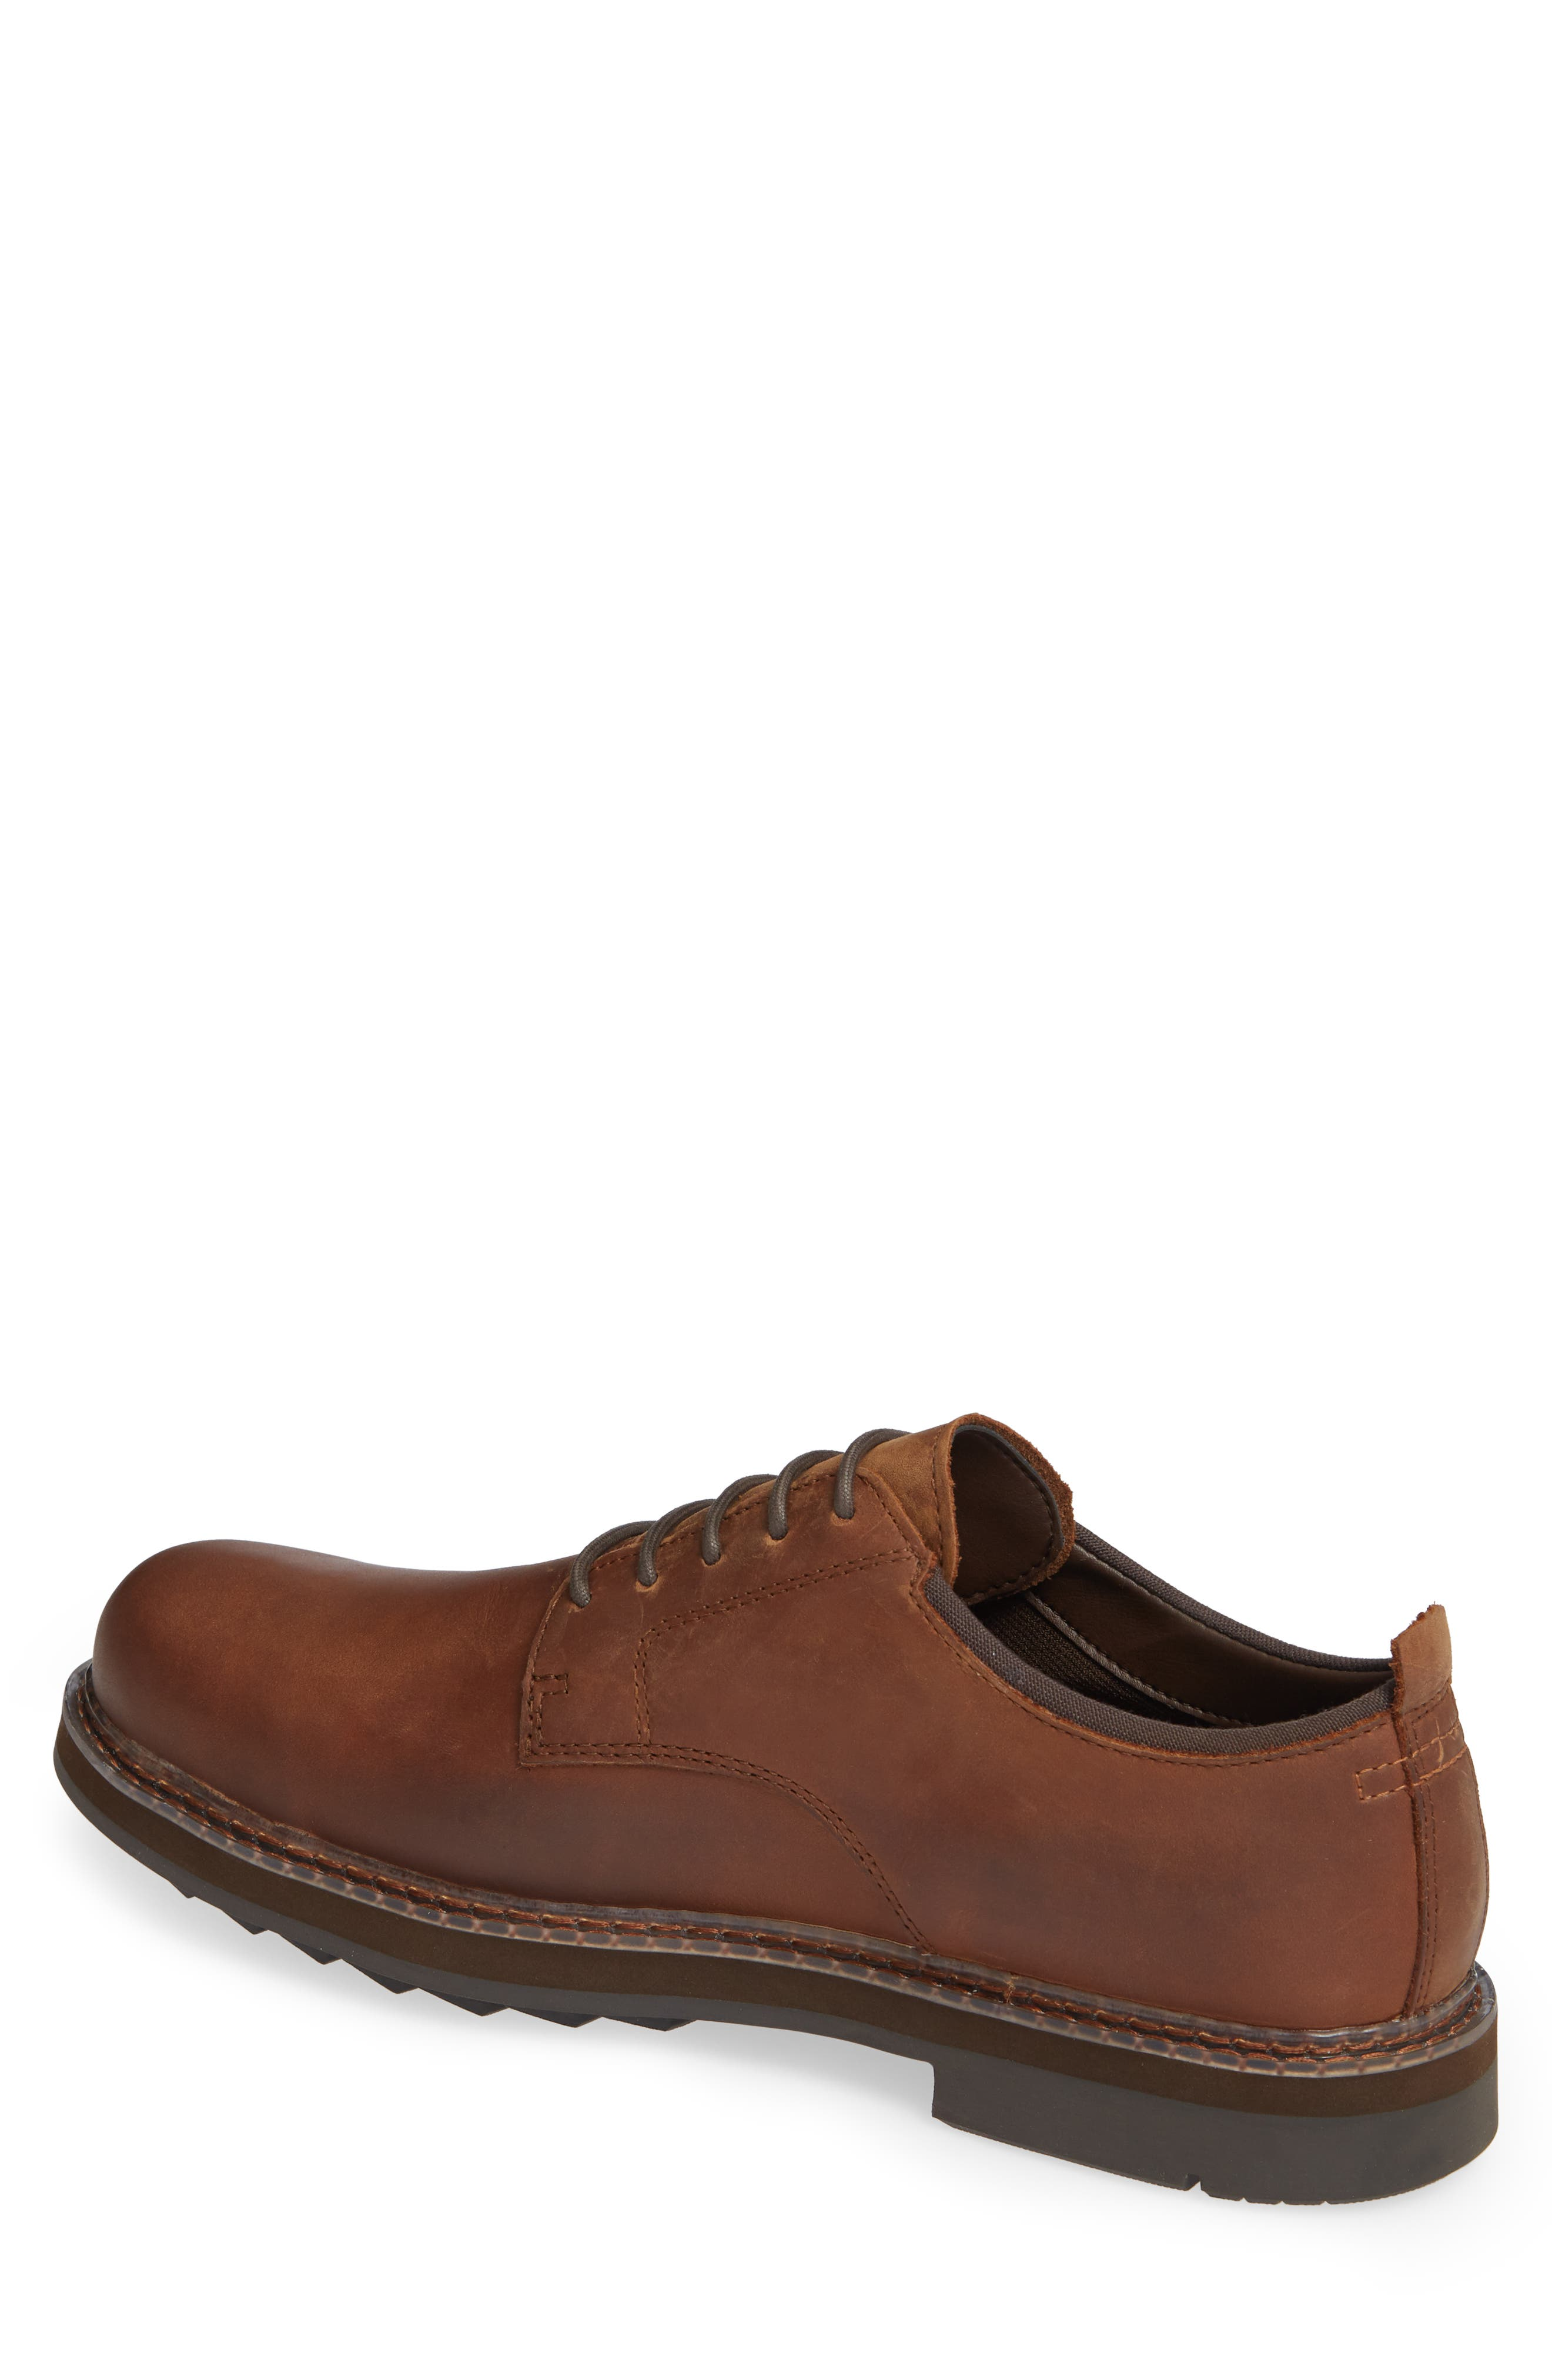 Squall Canyon Waterproof Plain Toe Derby,                             Alternate thumbnail 2, color,                             COPPER LEATHER